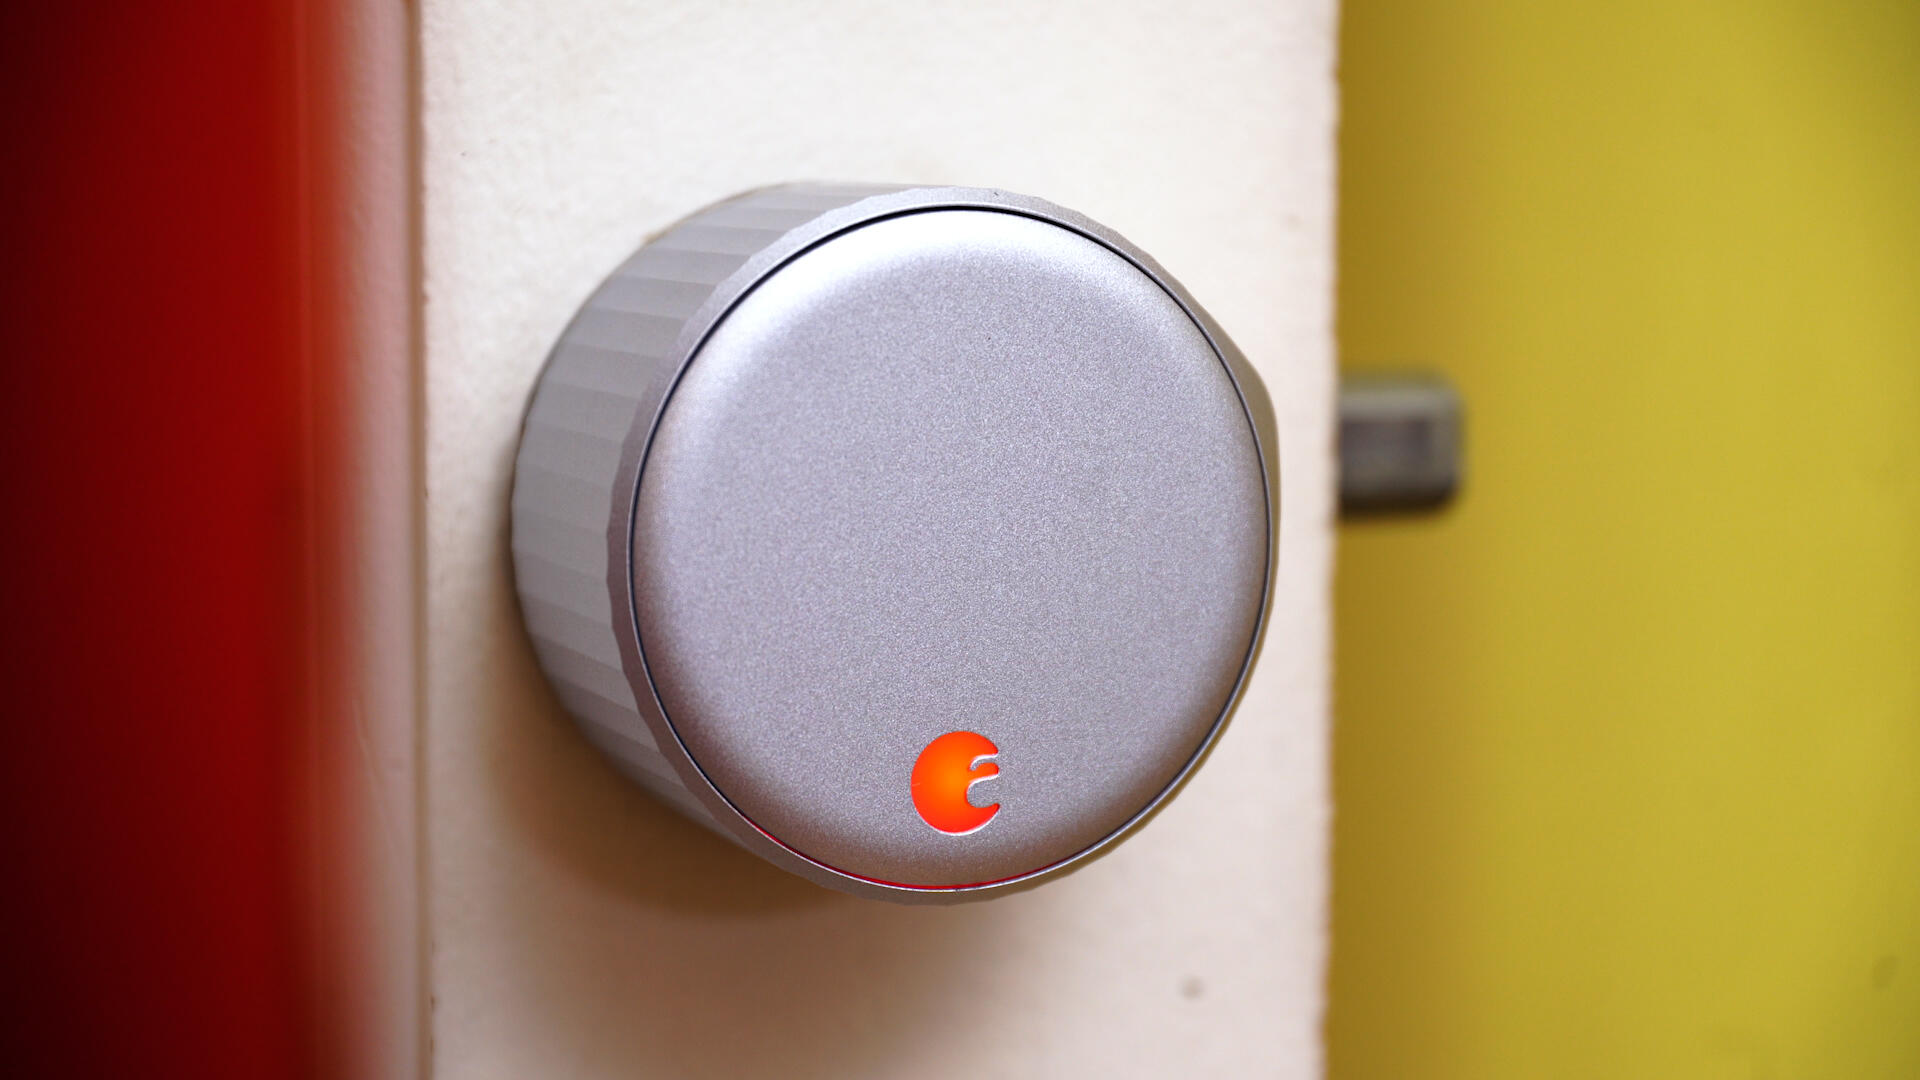 Video: August's new smart lock lives up to lofty expectations